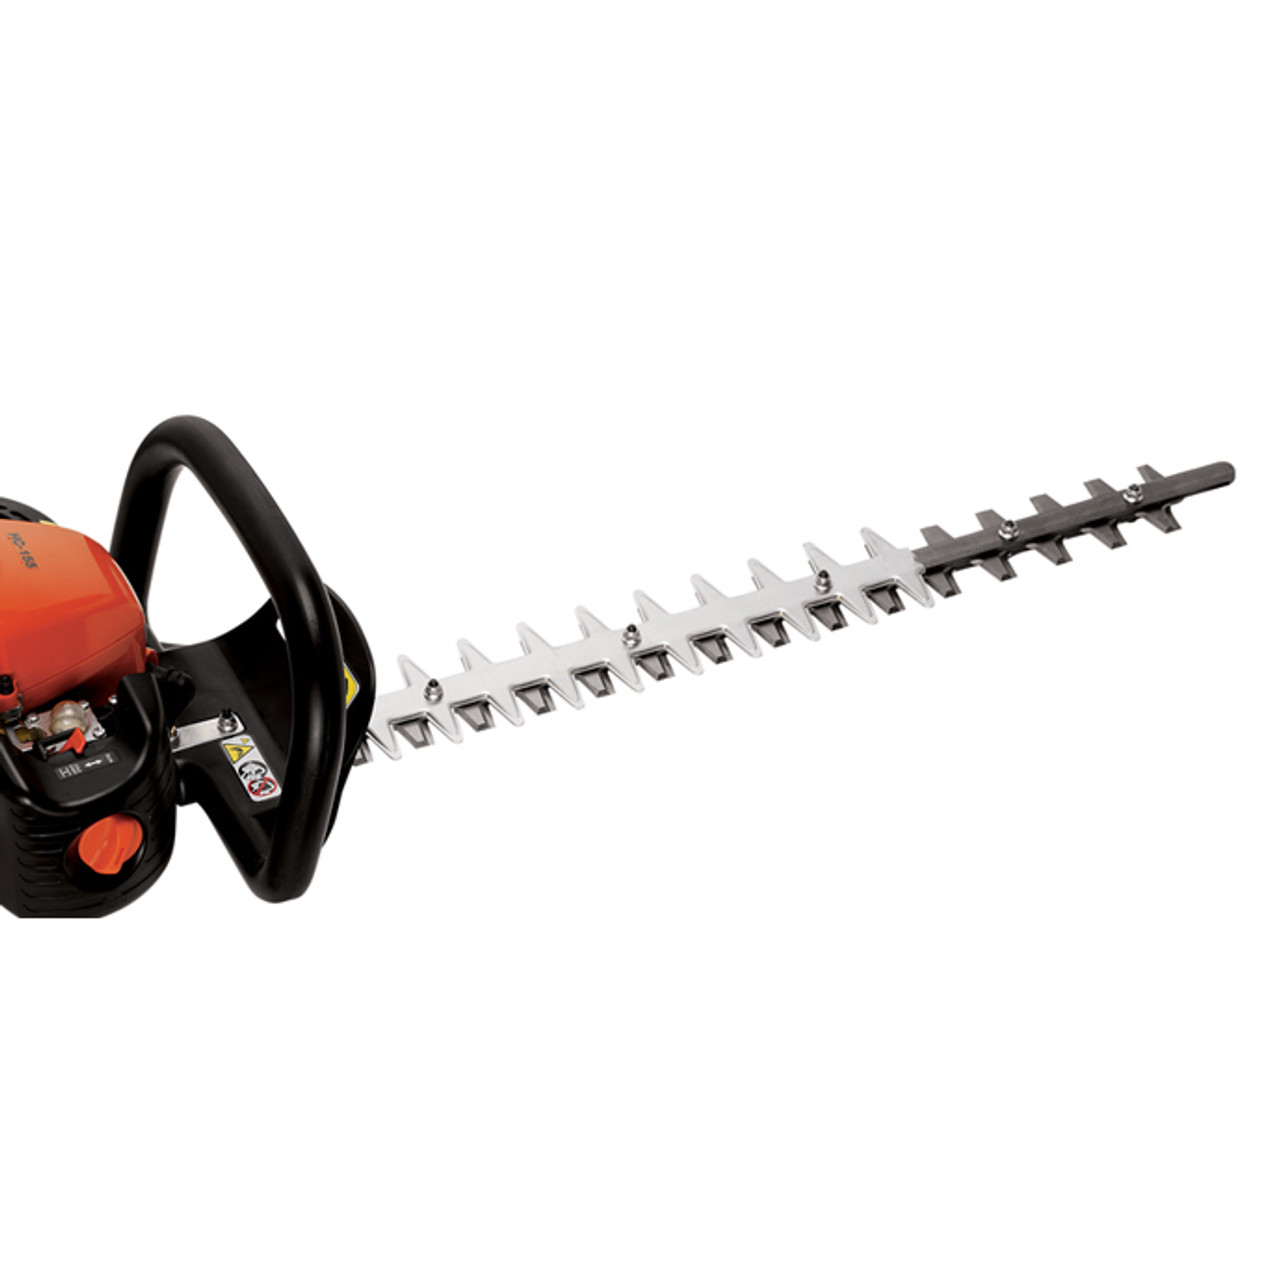 """ECHO HC-155 21.2cc Hedge Trimmer w/ 24"""" Double-Sided Blades & Easy Start Image 3"""